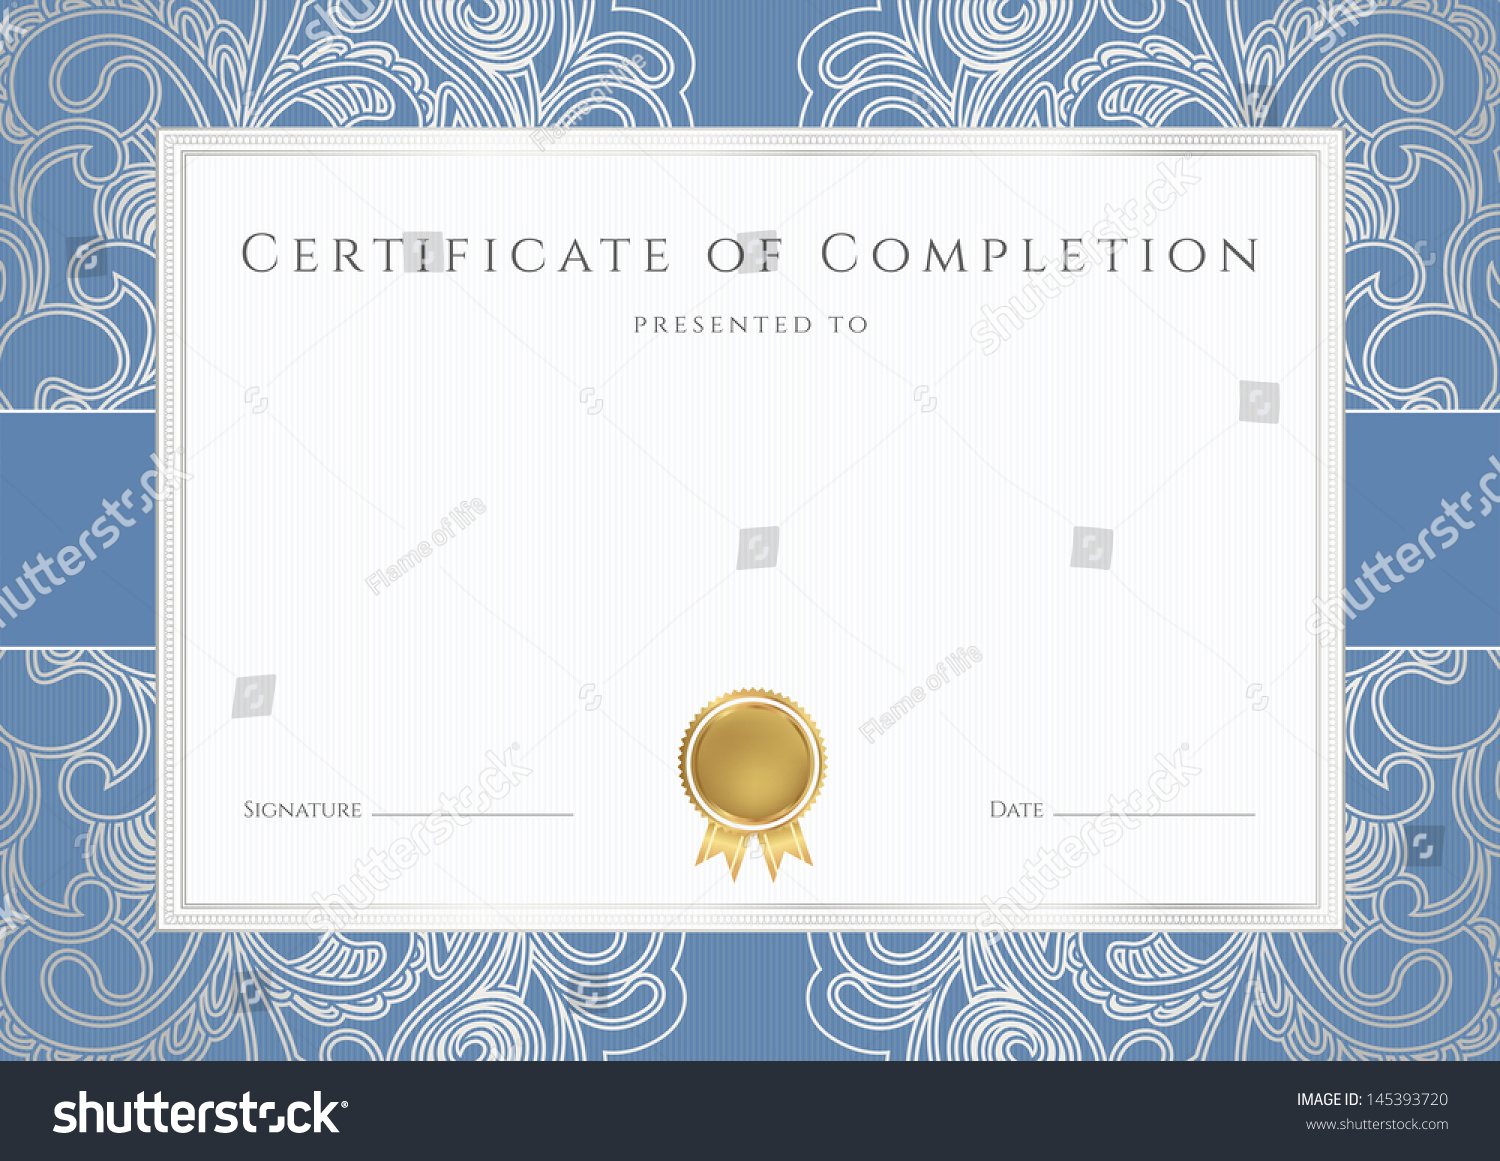 Certificate completion template sample background floral stock certificate of completion template or sample background with floral silver scroll pattern watermark 1betcityfo Image collections